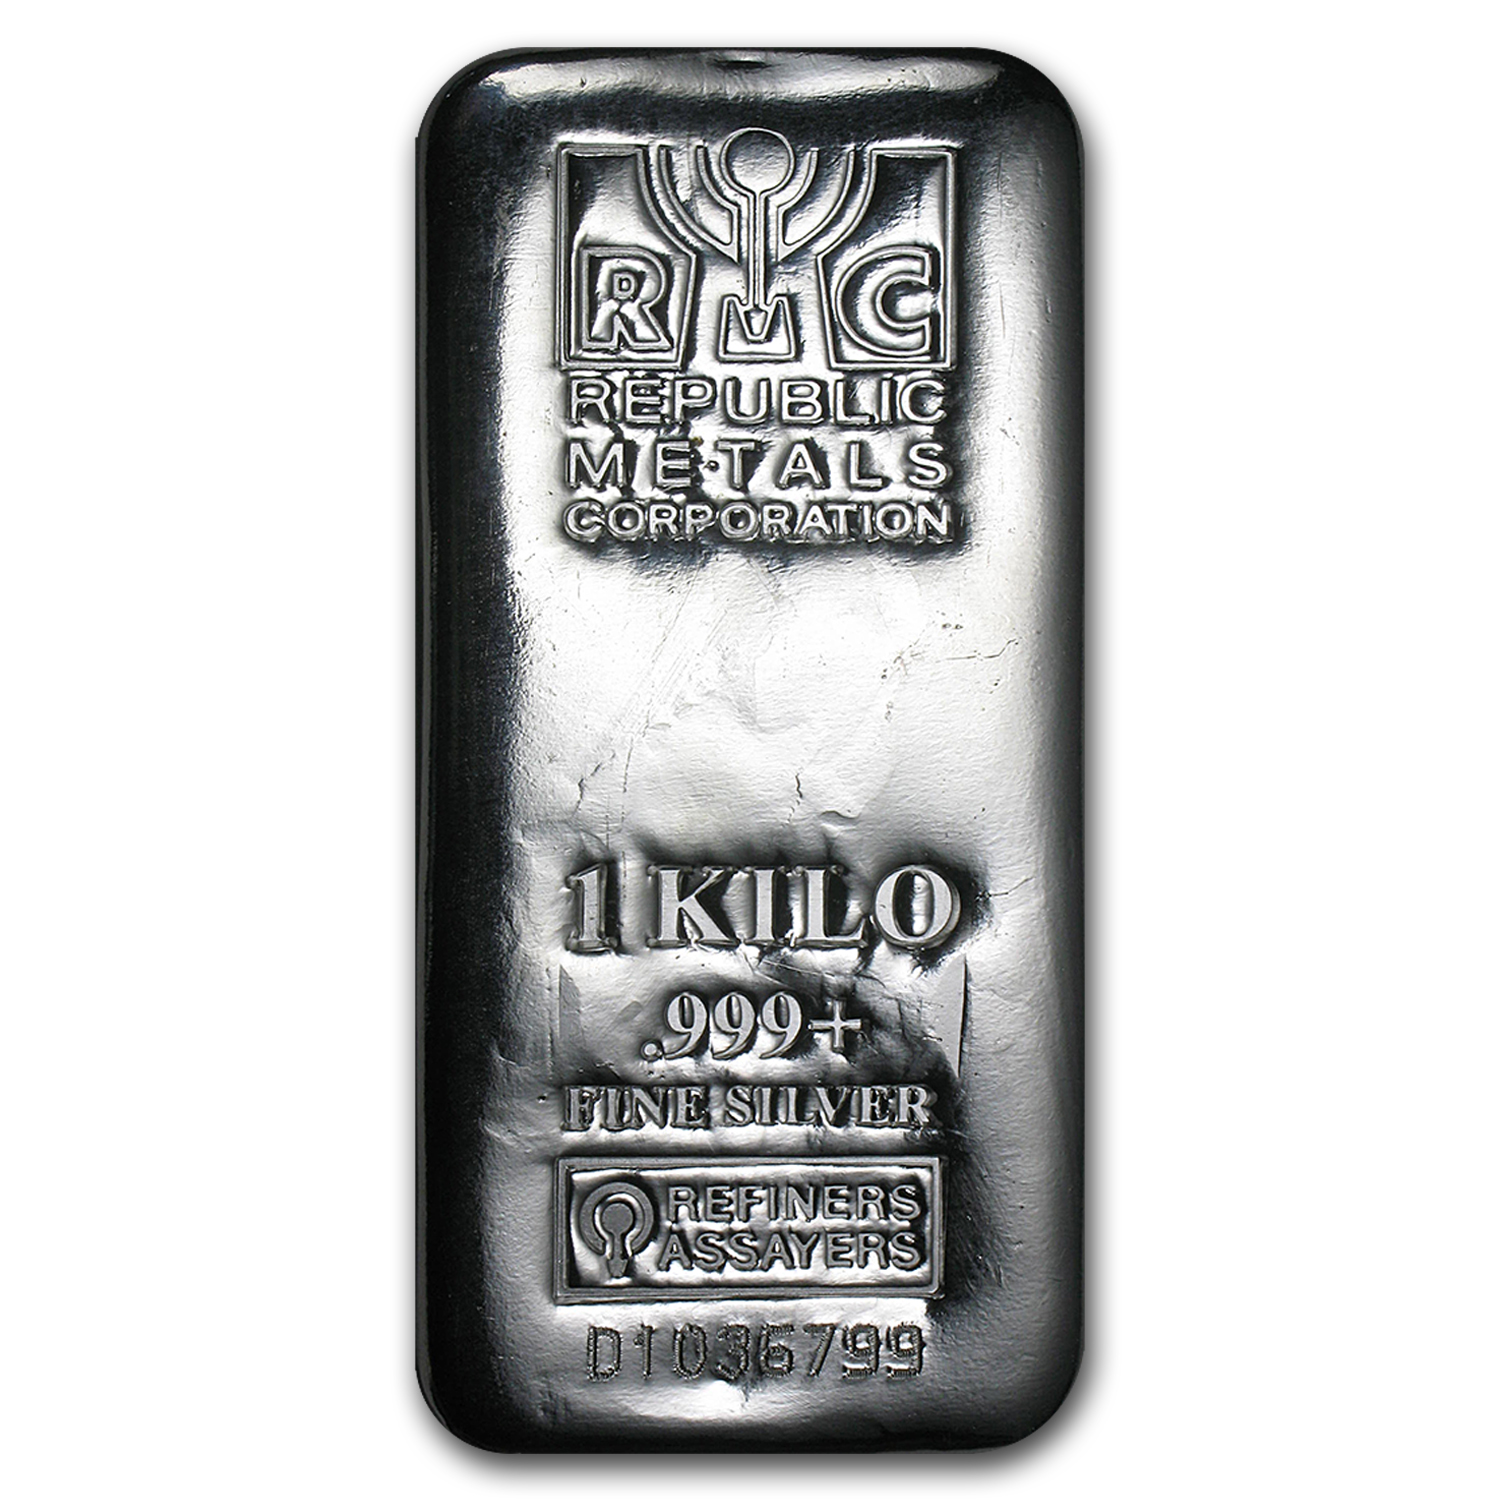 1 kilo Silver Bar - Republic Metals Corp. (RMC)